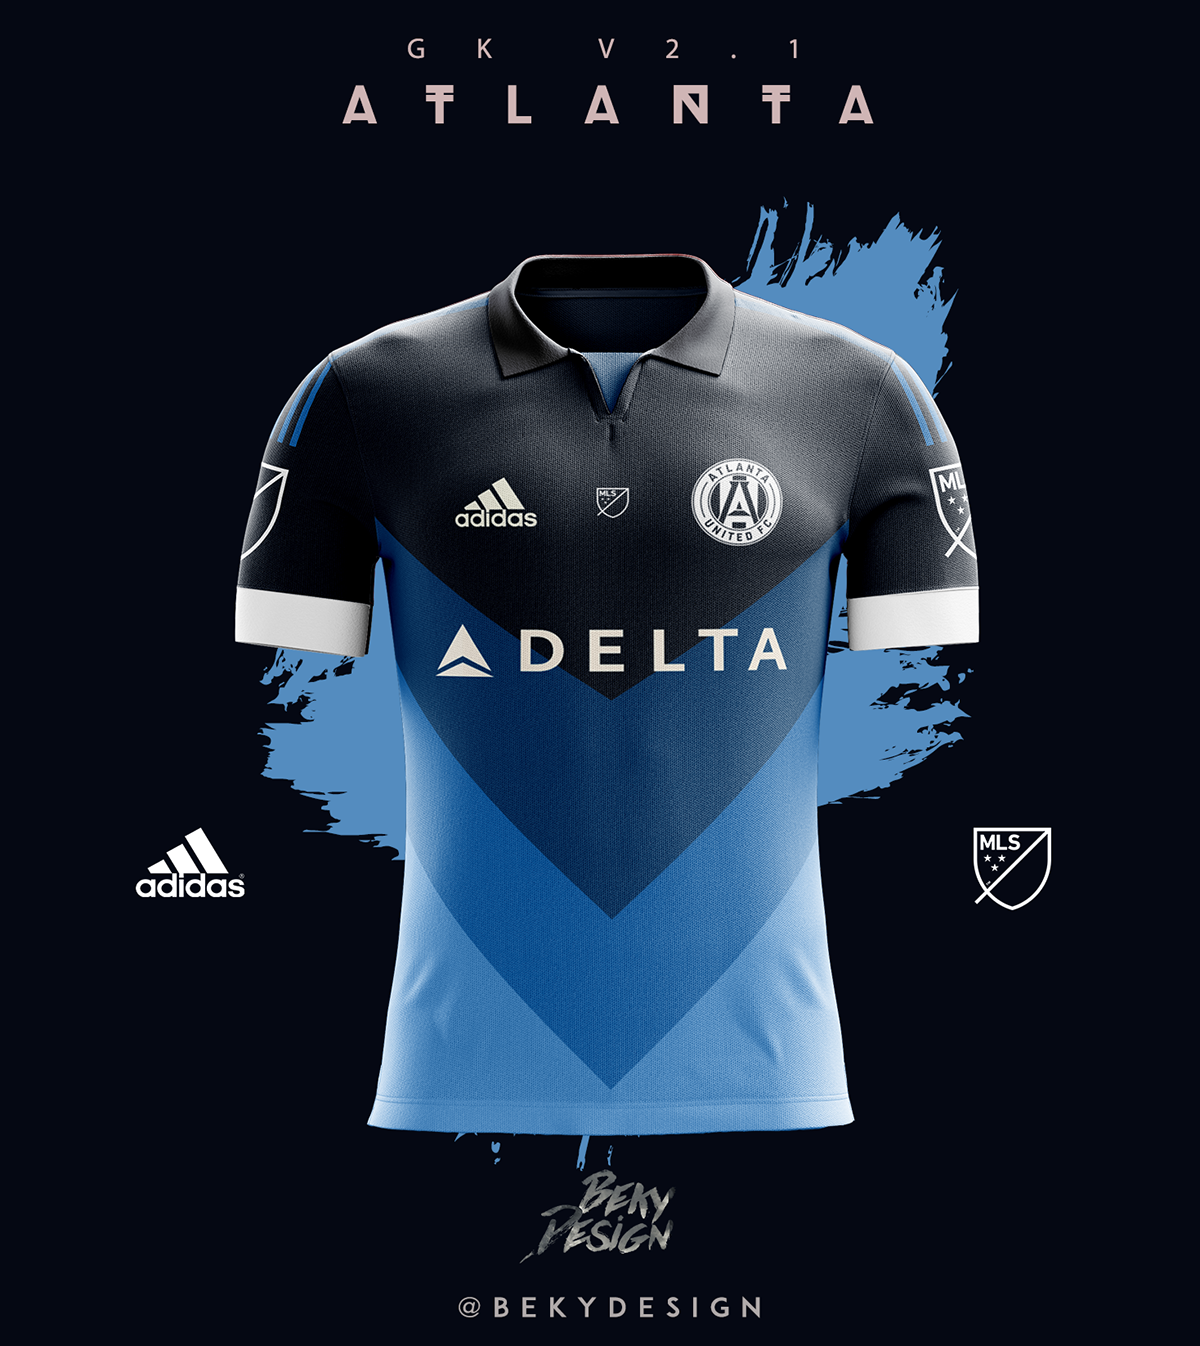 8d1d47d978e4e Atlanta United FC - Concepts on Behance